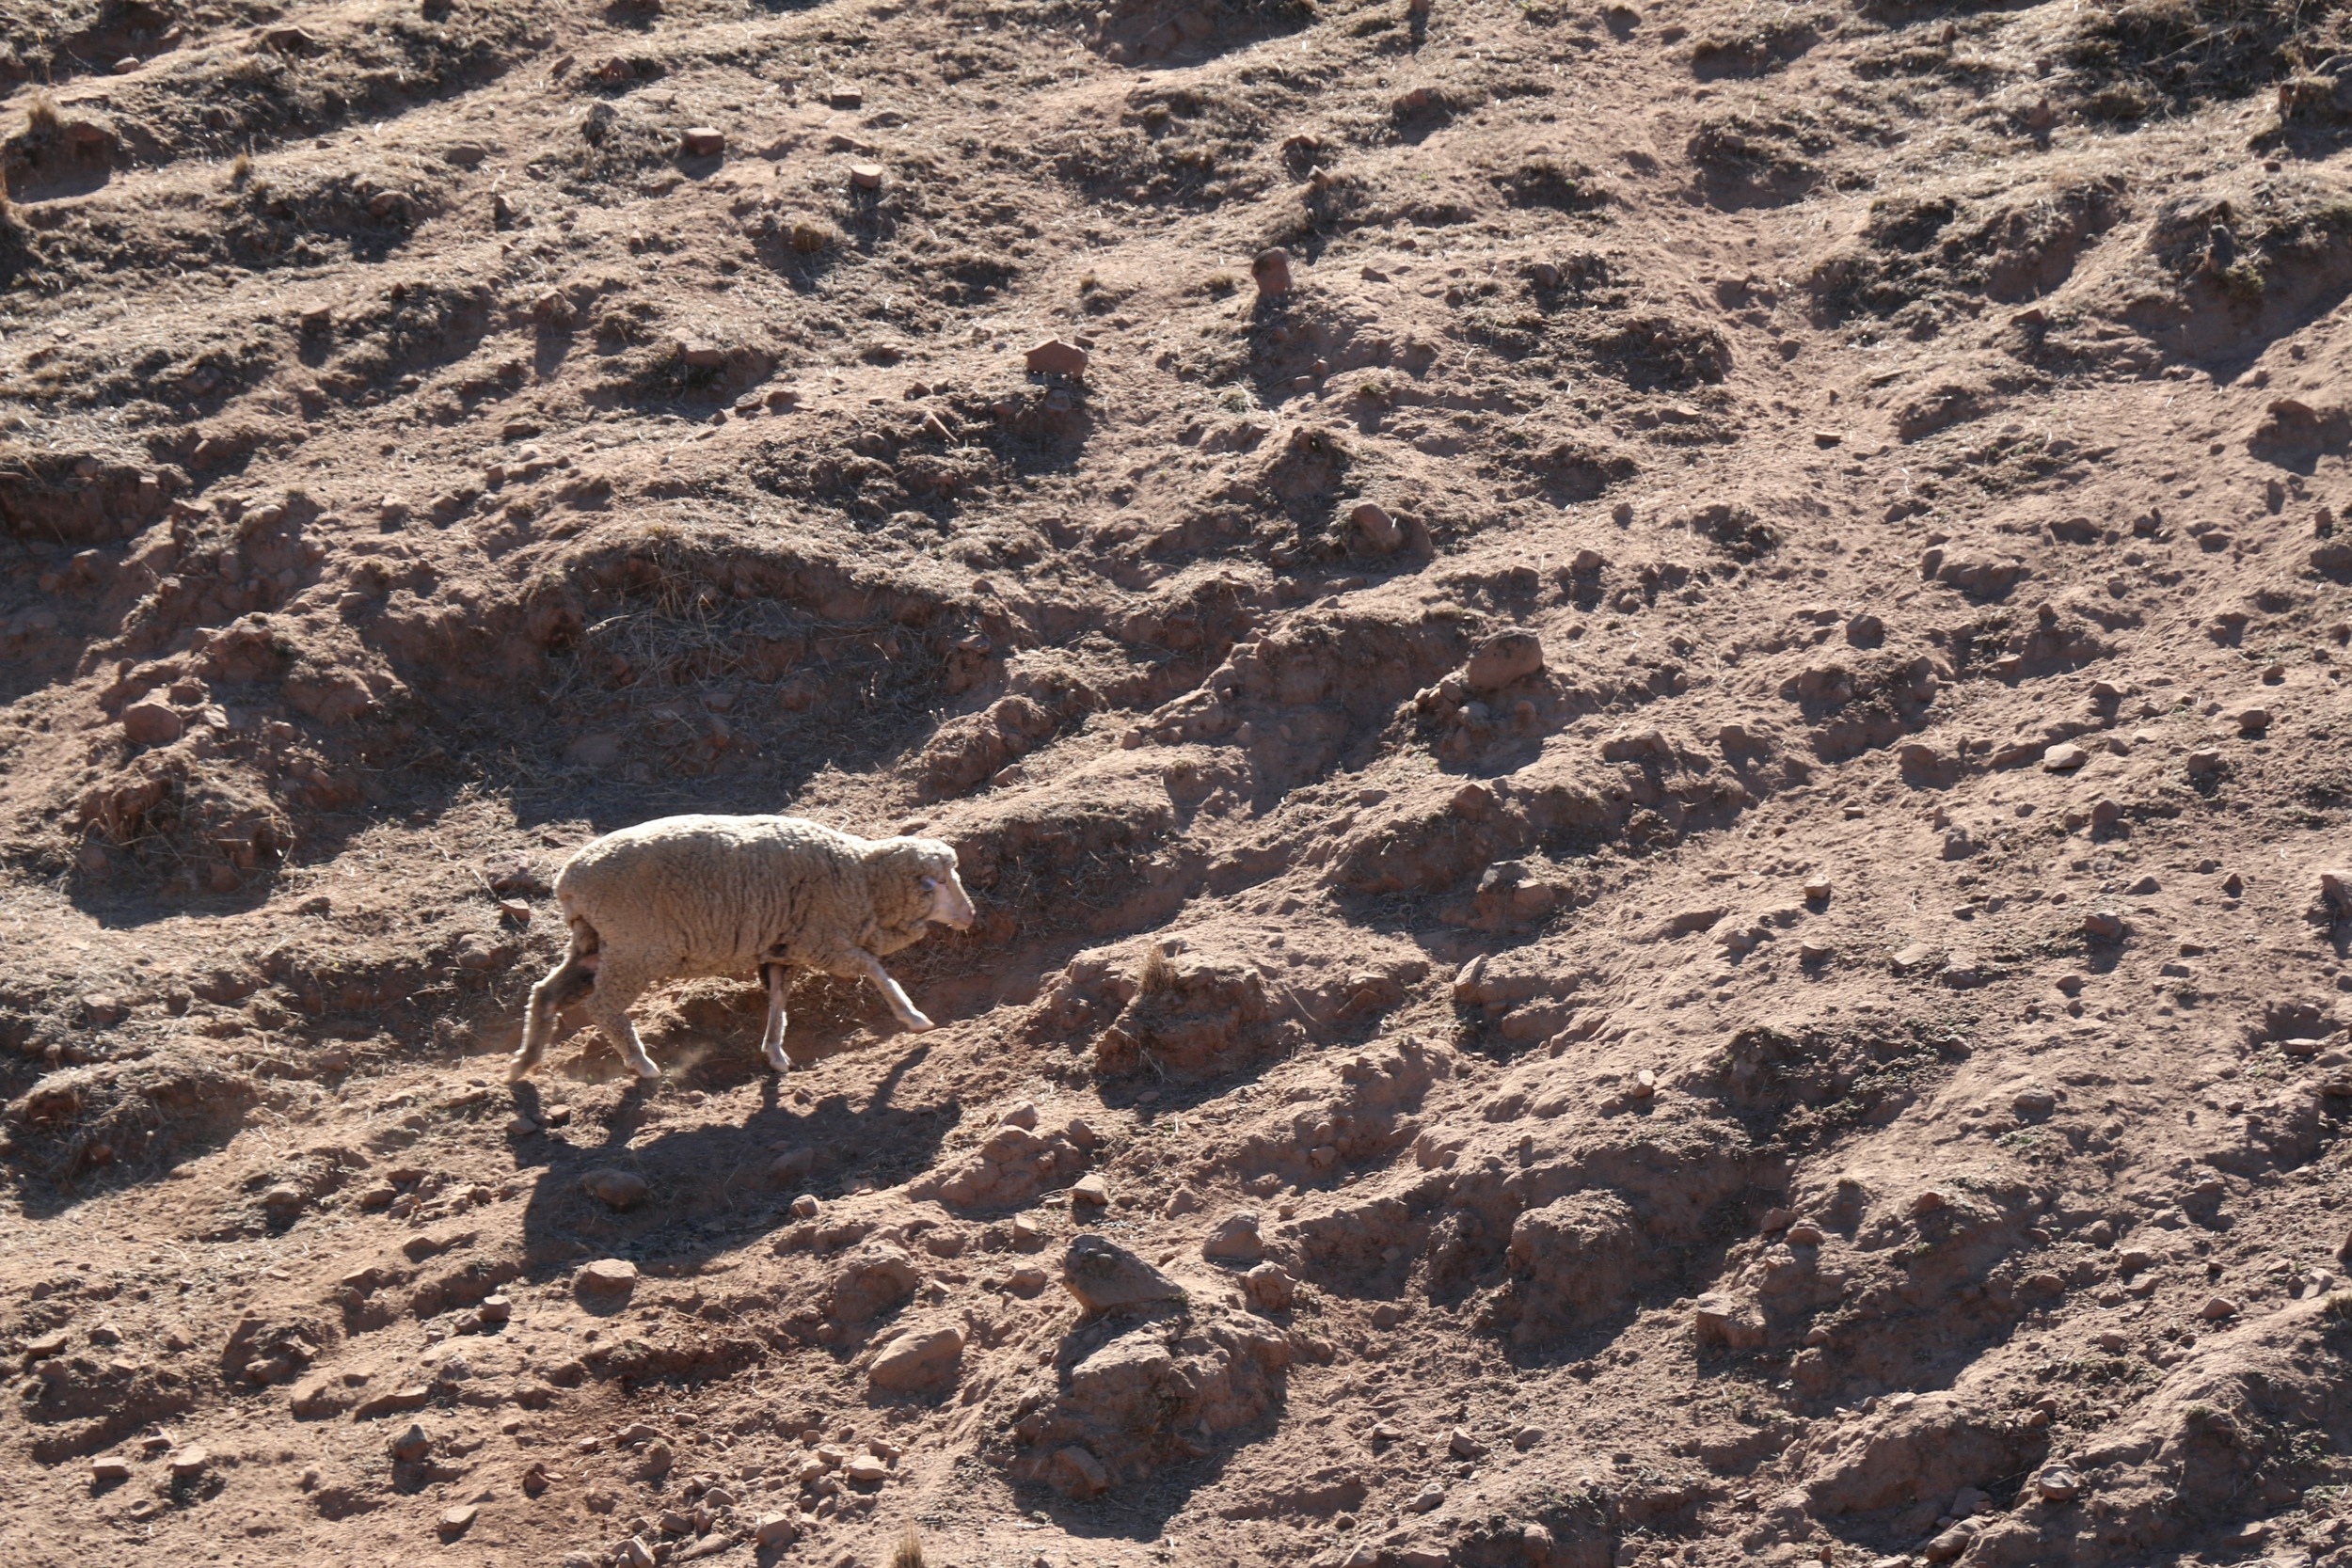 Baked Earth and Lone Sheep.jpg